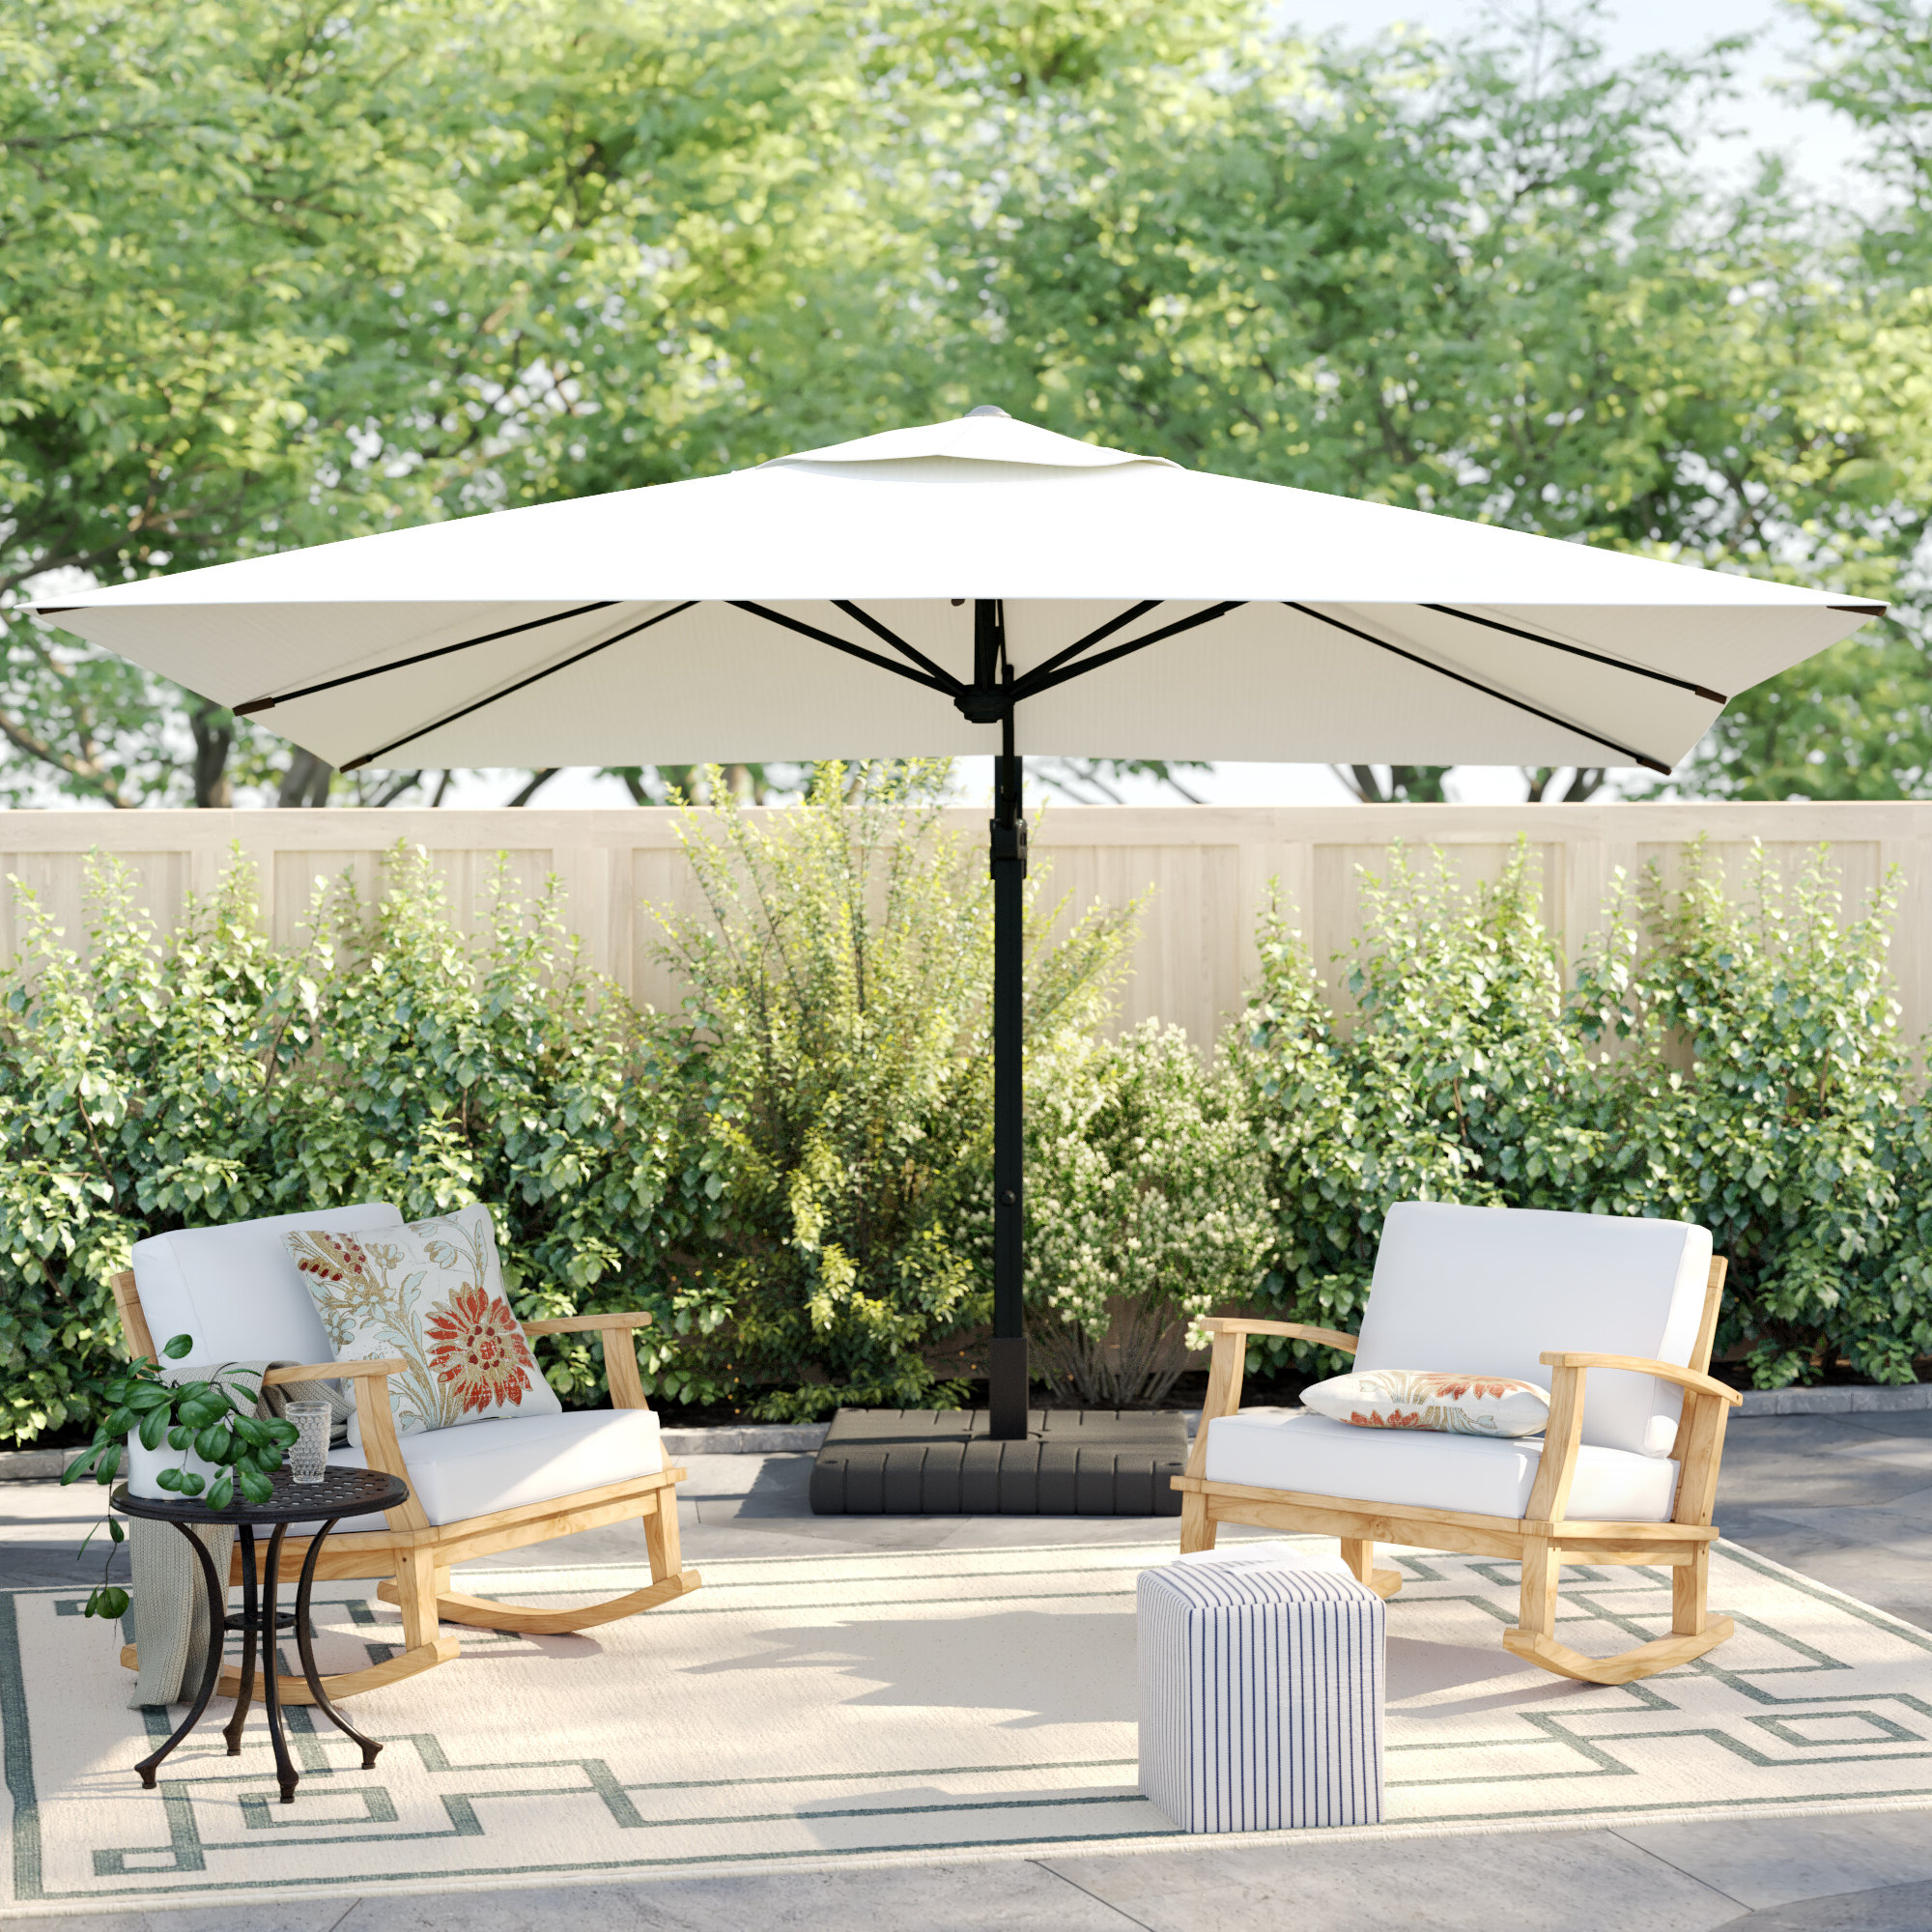 Carlisle 10' Square Cantilever Sunbrella Umbrella Throughout Widely Used Spitler Square Cantilever Umbrellas (View 10 of 20)